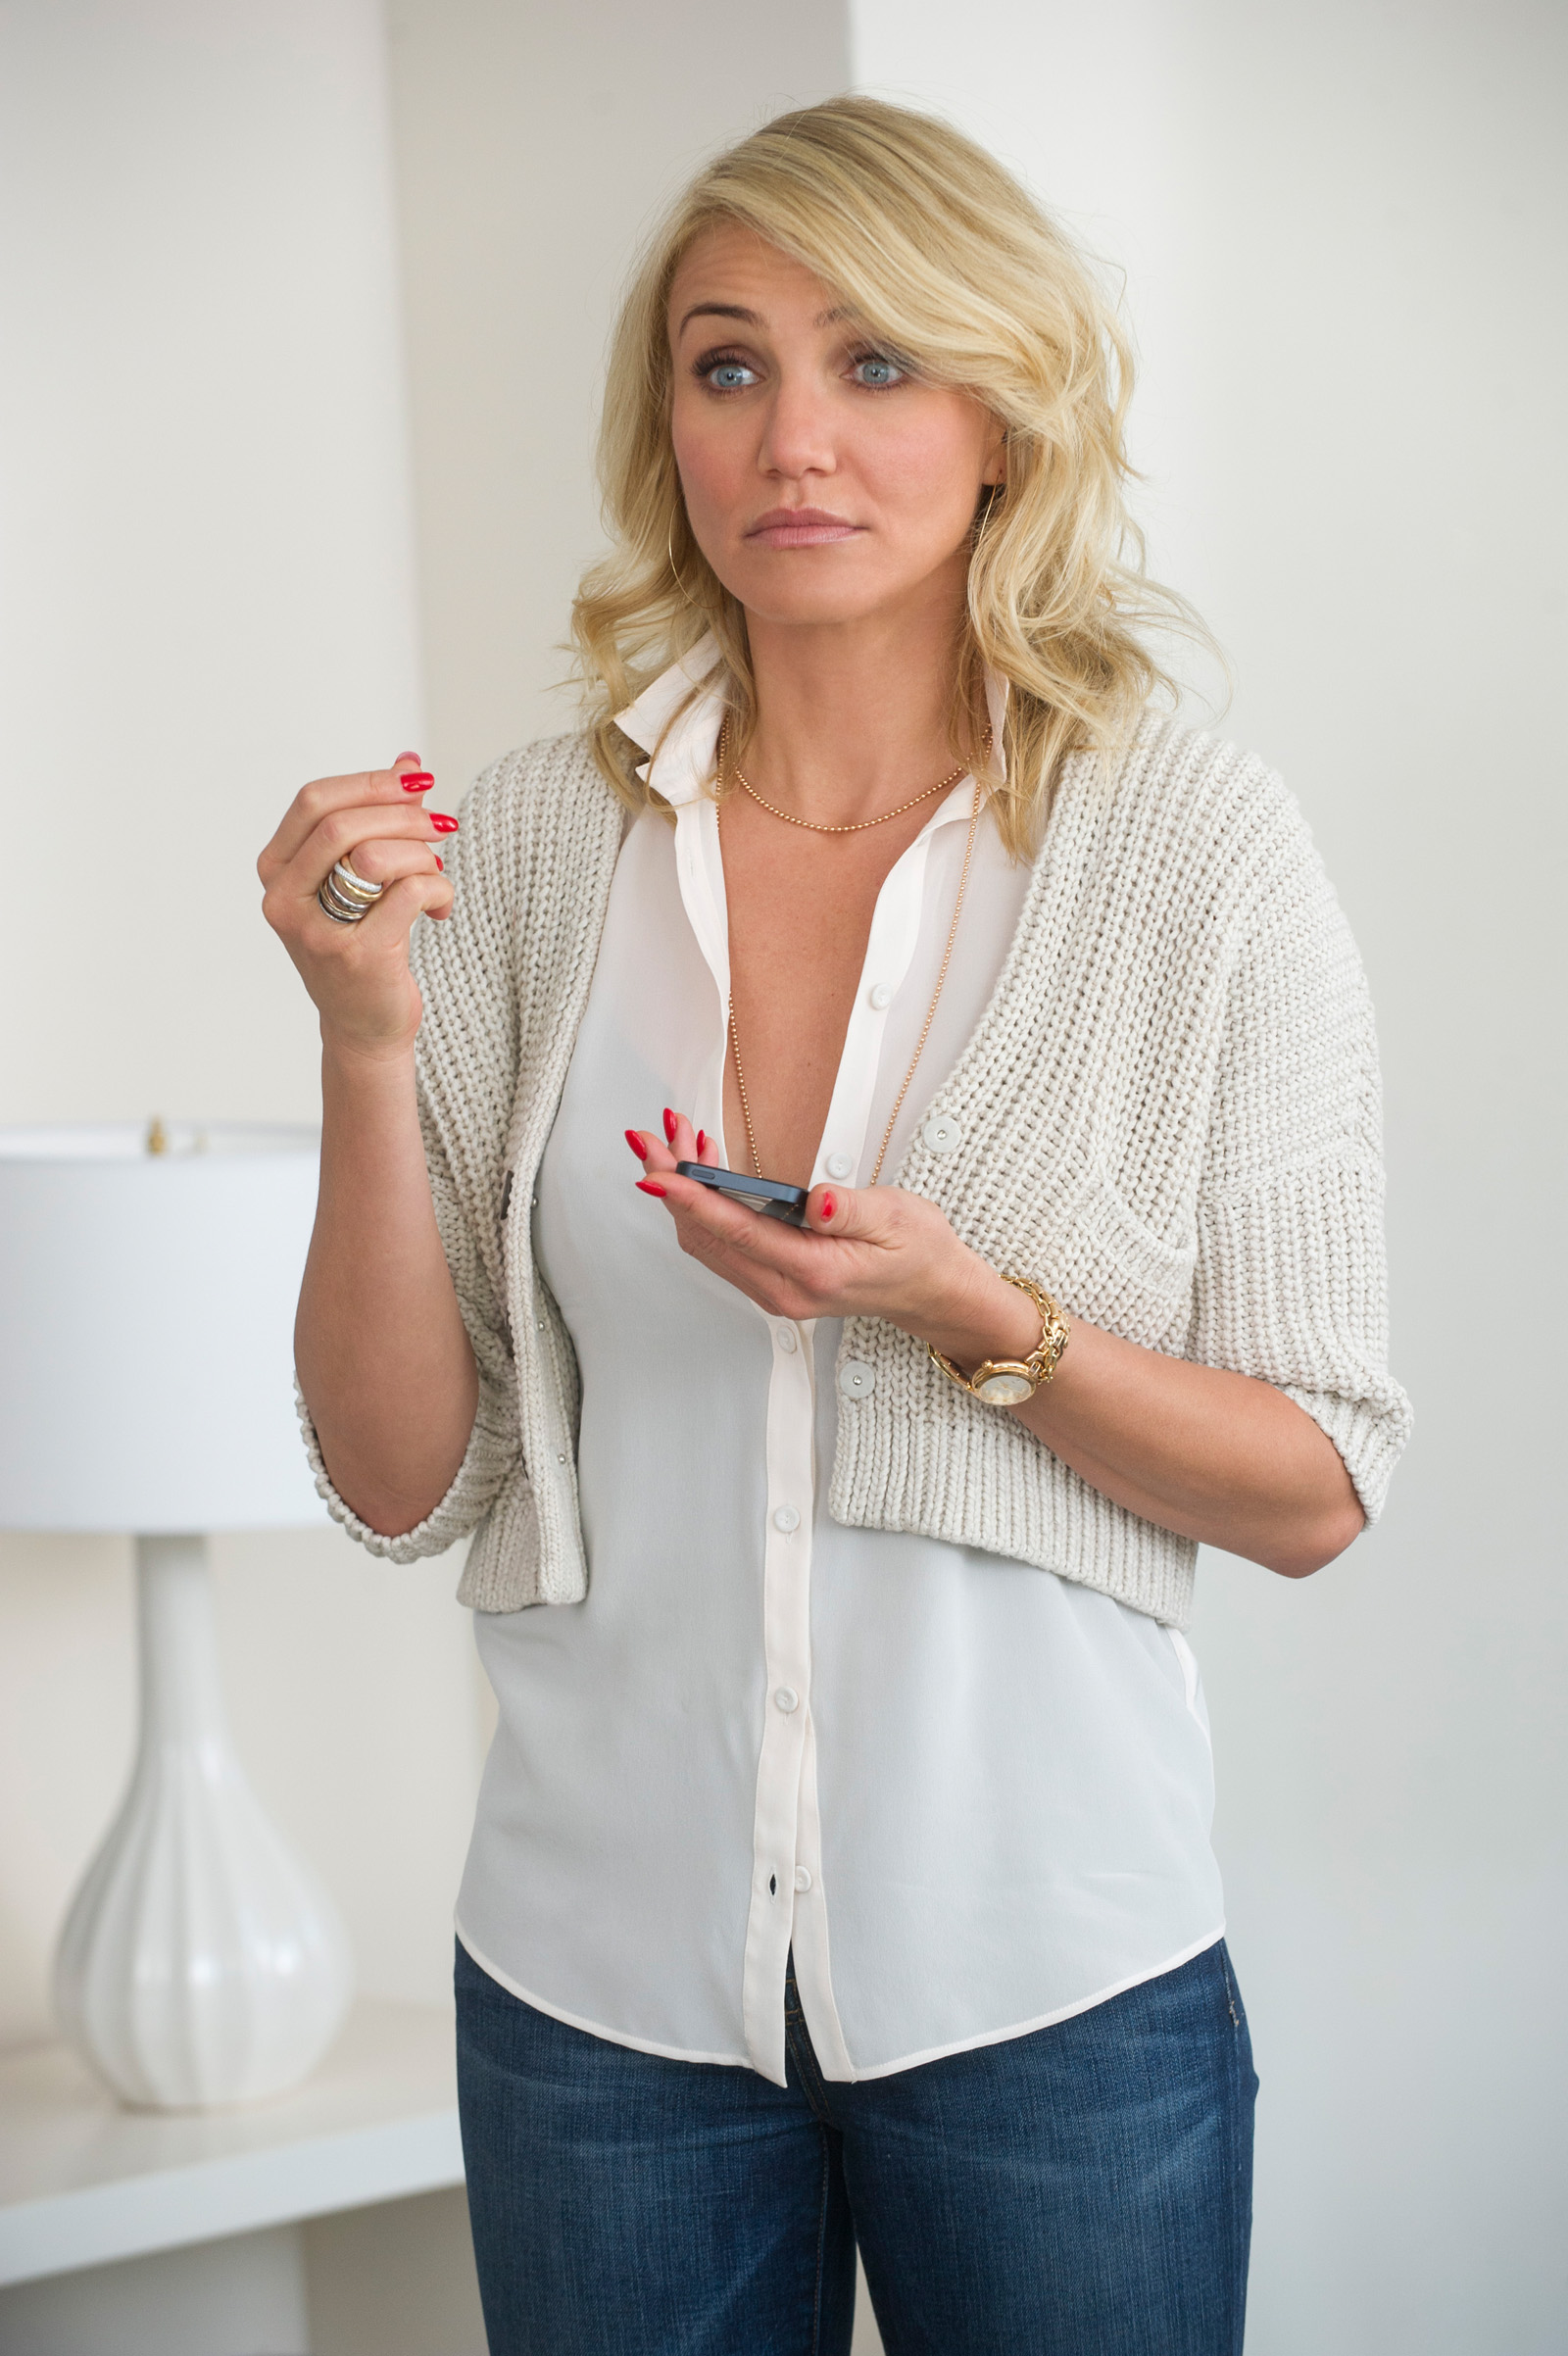 diaz women In her latest comedy the other woman, cameron diaz stars alongside leslie mann and kate upton as they all take revenge on an adulterous boyfriend.